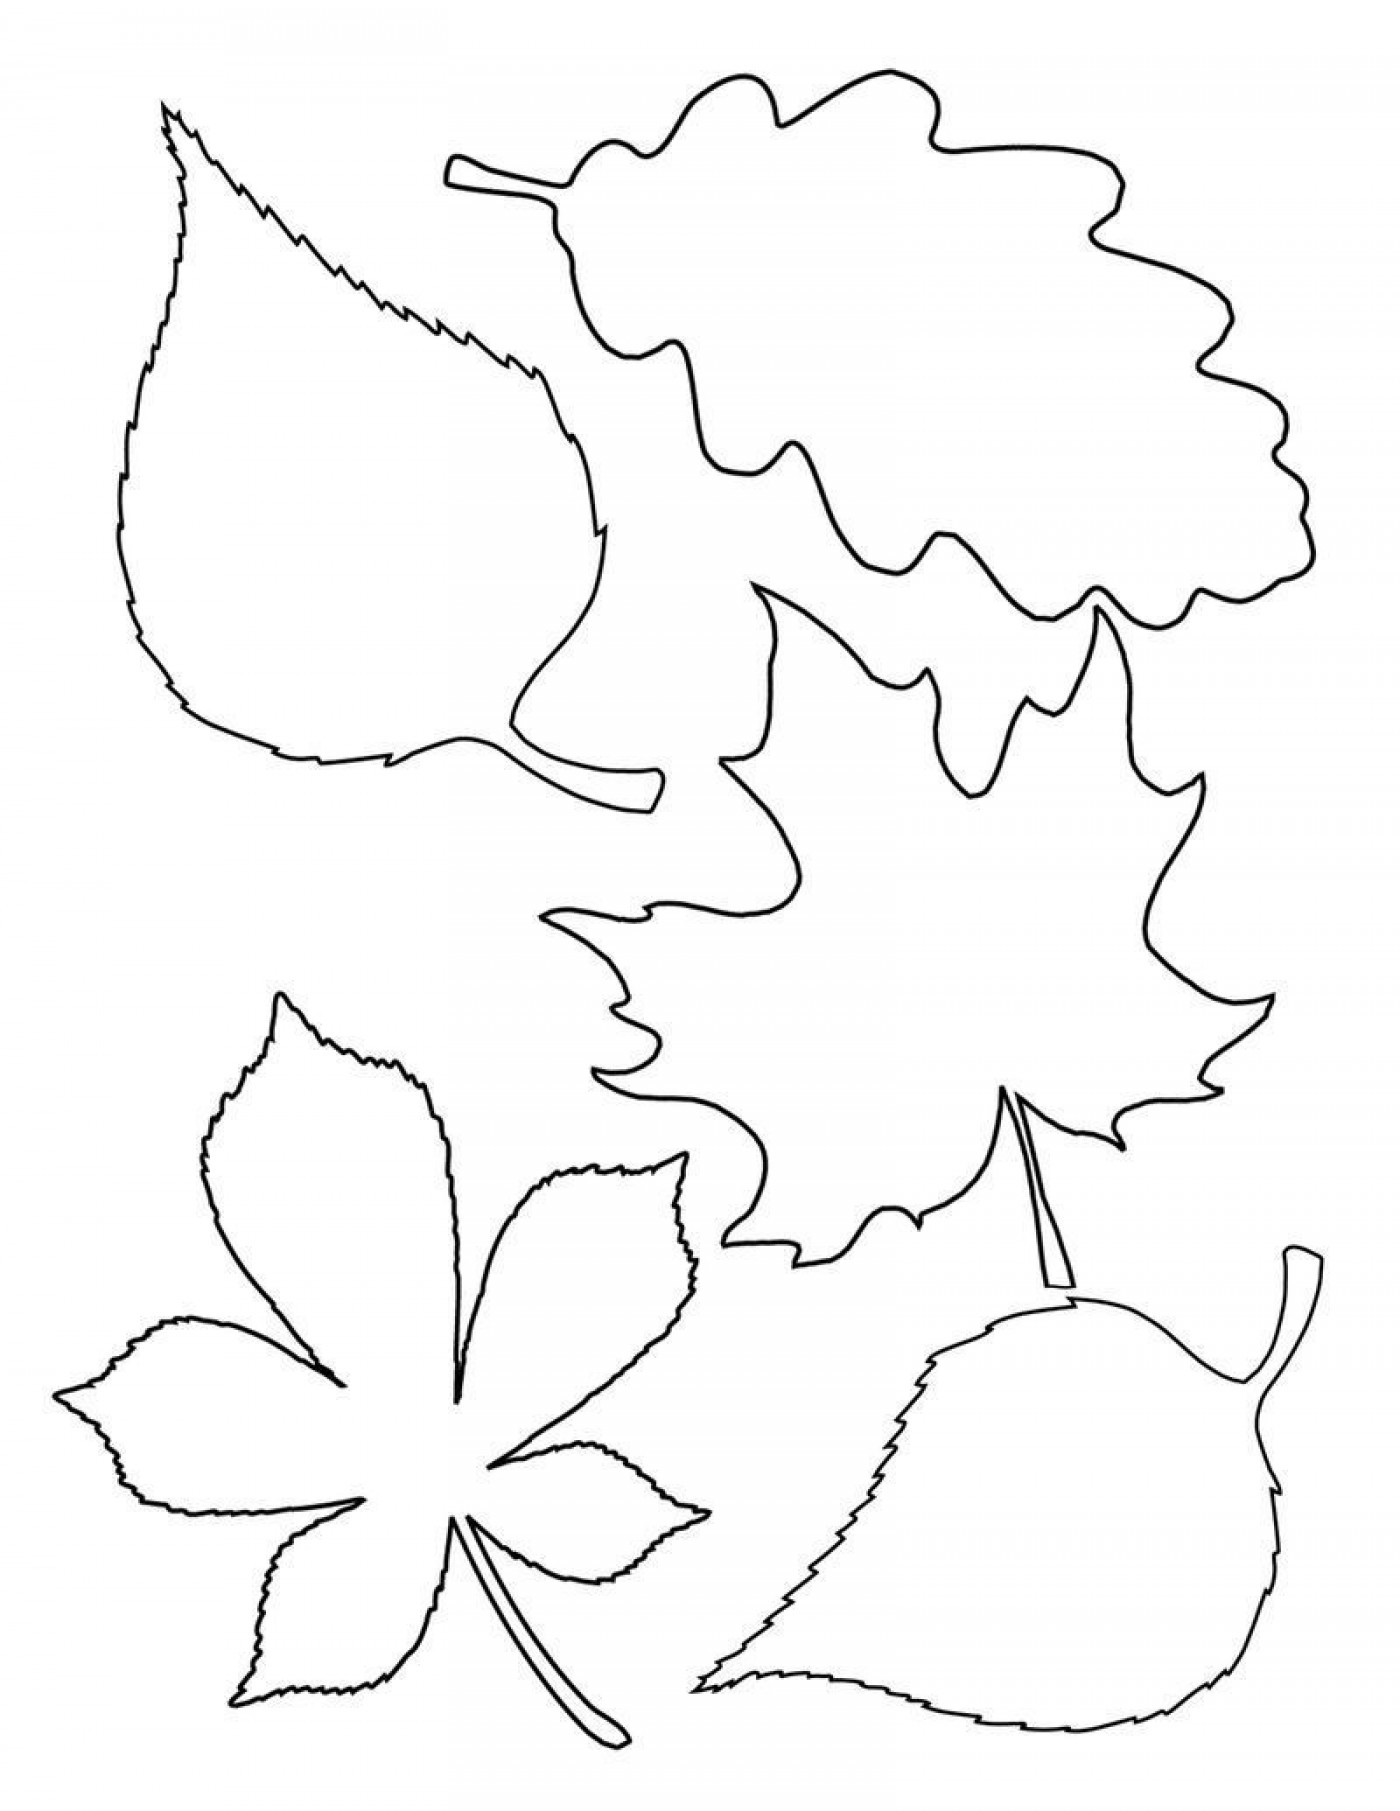 004 Astounding Leaf Template With Line Design  Fall Printable Blank1400